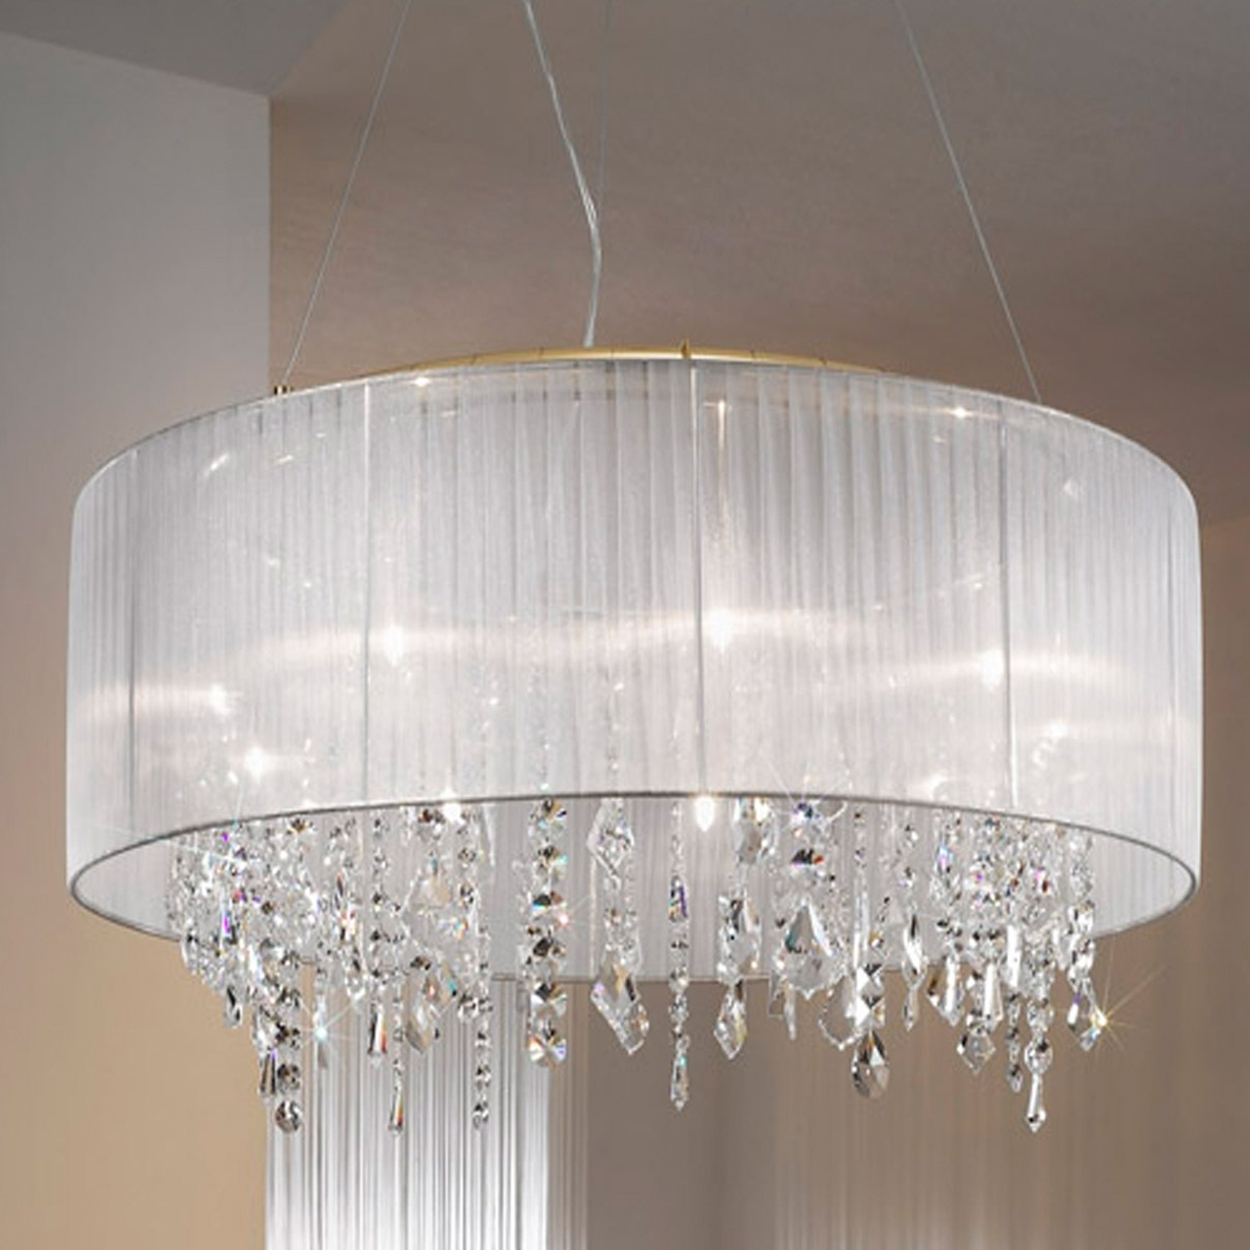 Famous Glamorous Barrel Lamp Shade Chandelier Drum Chandeliers Shades Of Regarding Lampshade Chandeliers (View 3 of 20)